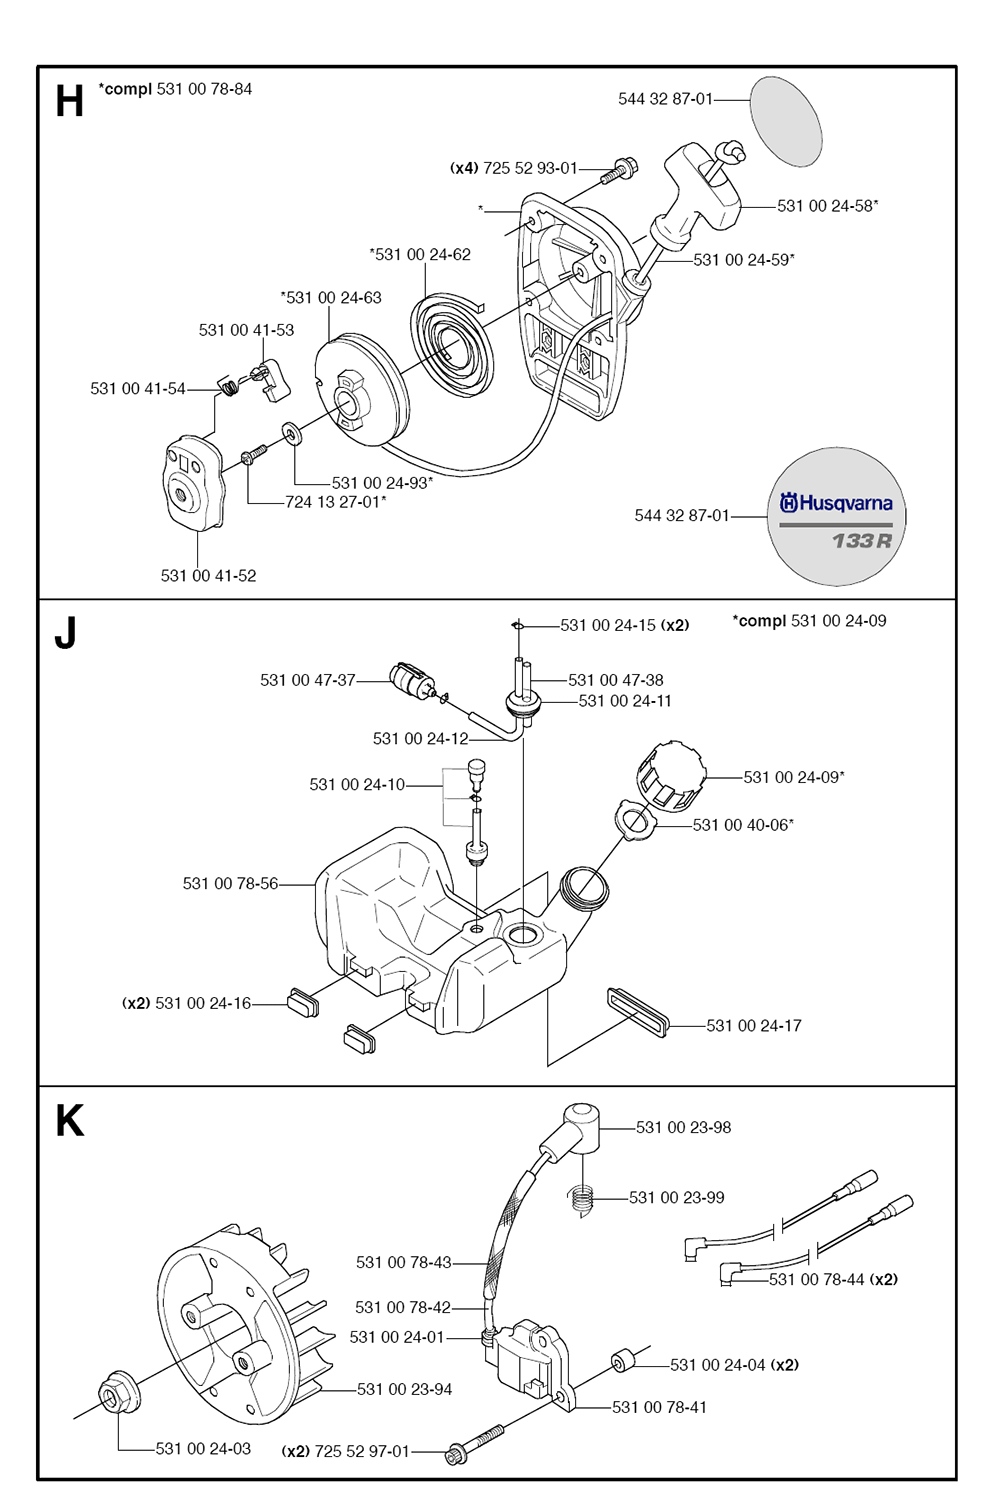 133 R-(5443299-01)-Husqvarna-PB-3Break Down